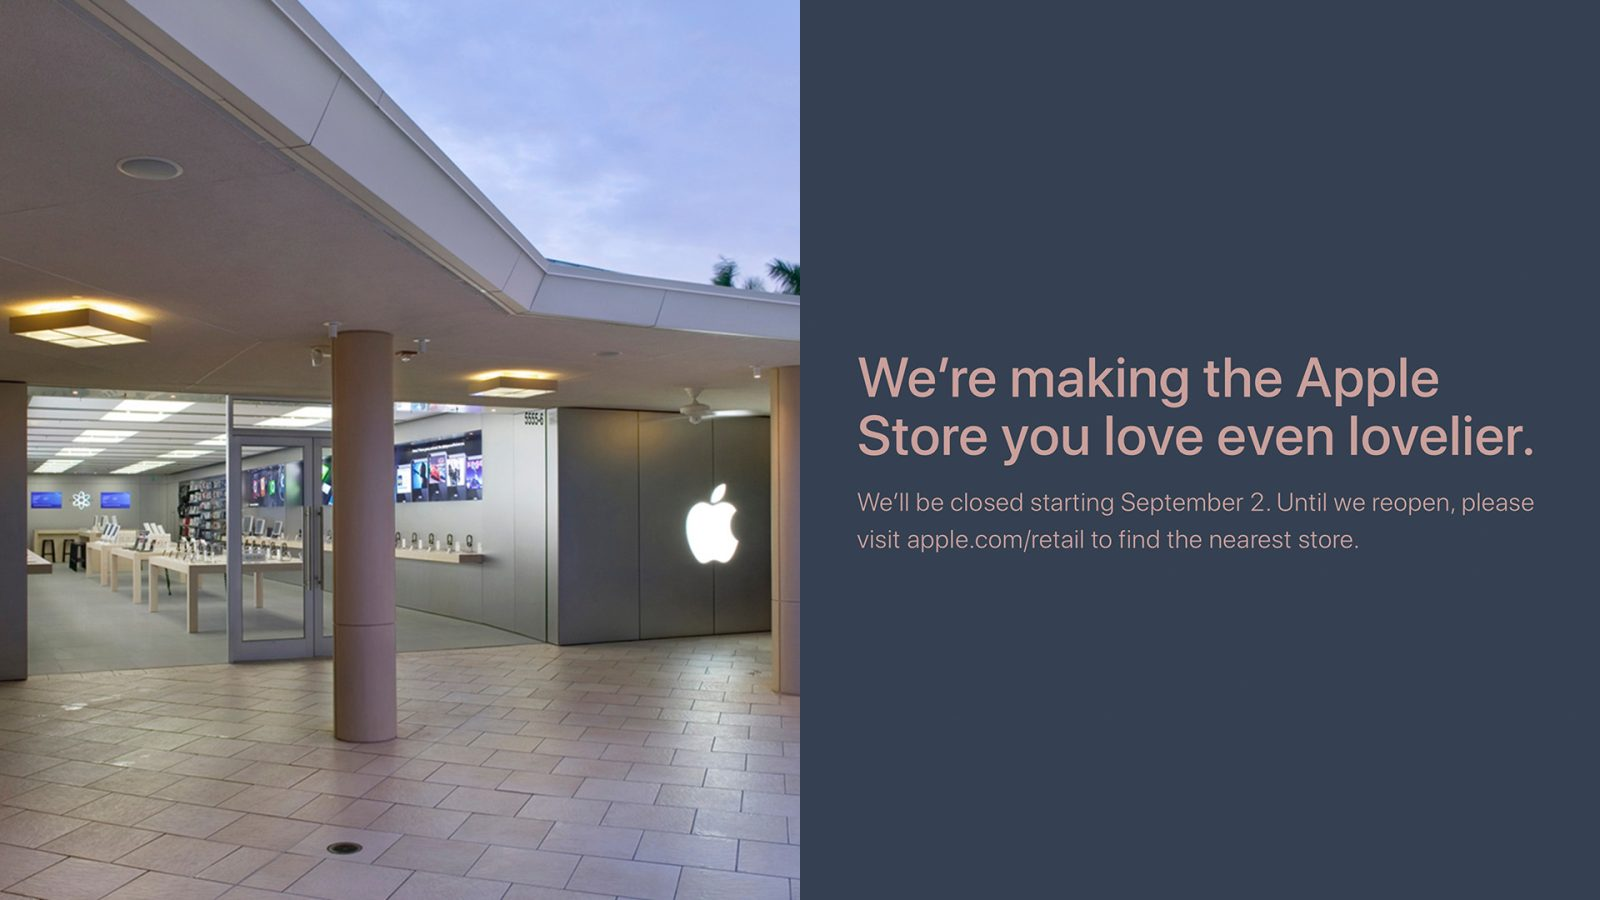 Renovations set to begin September 2nd at Apple's retail